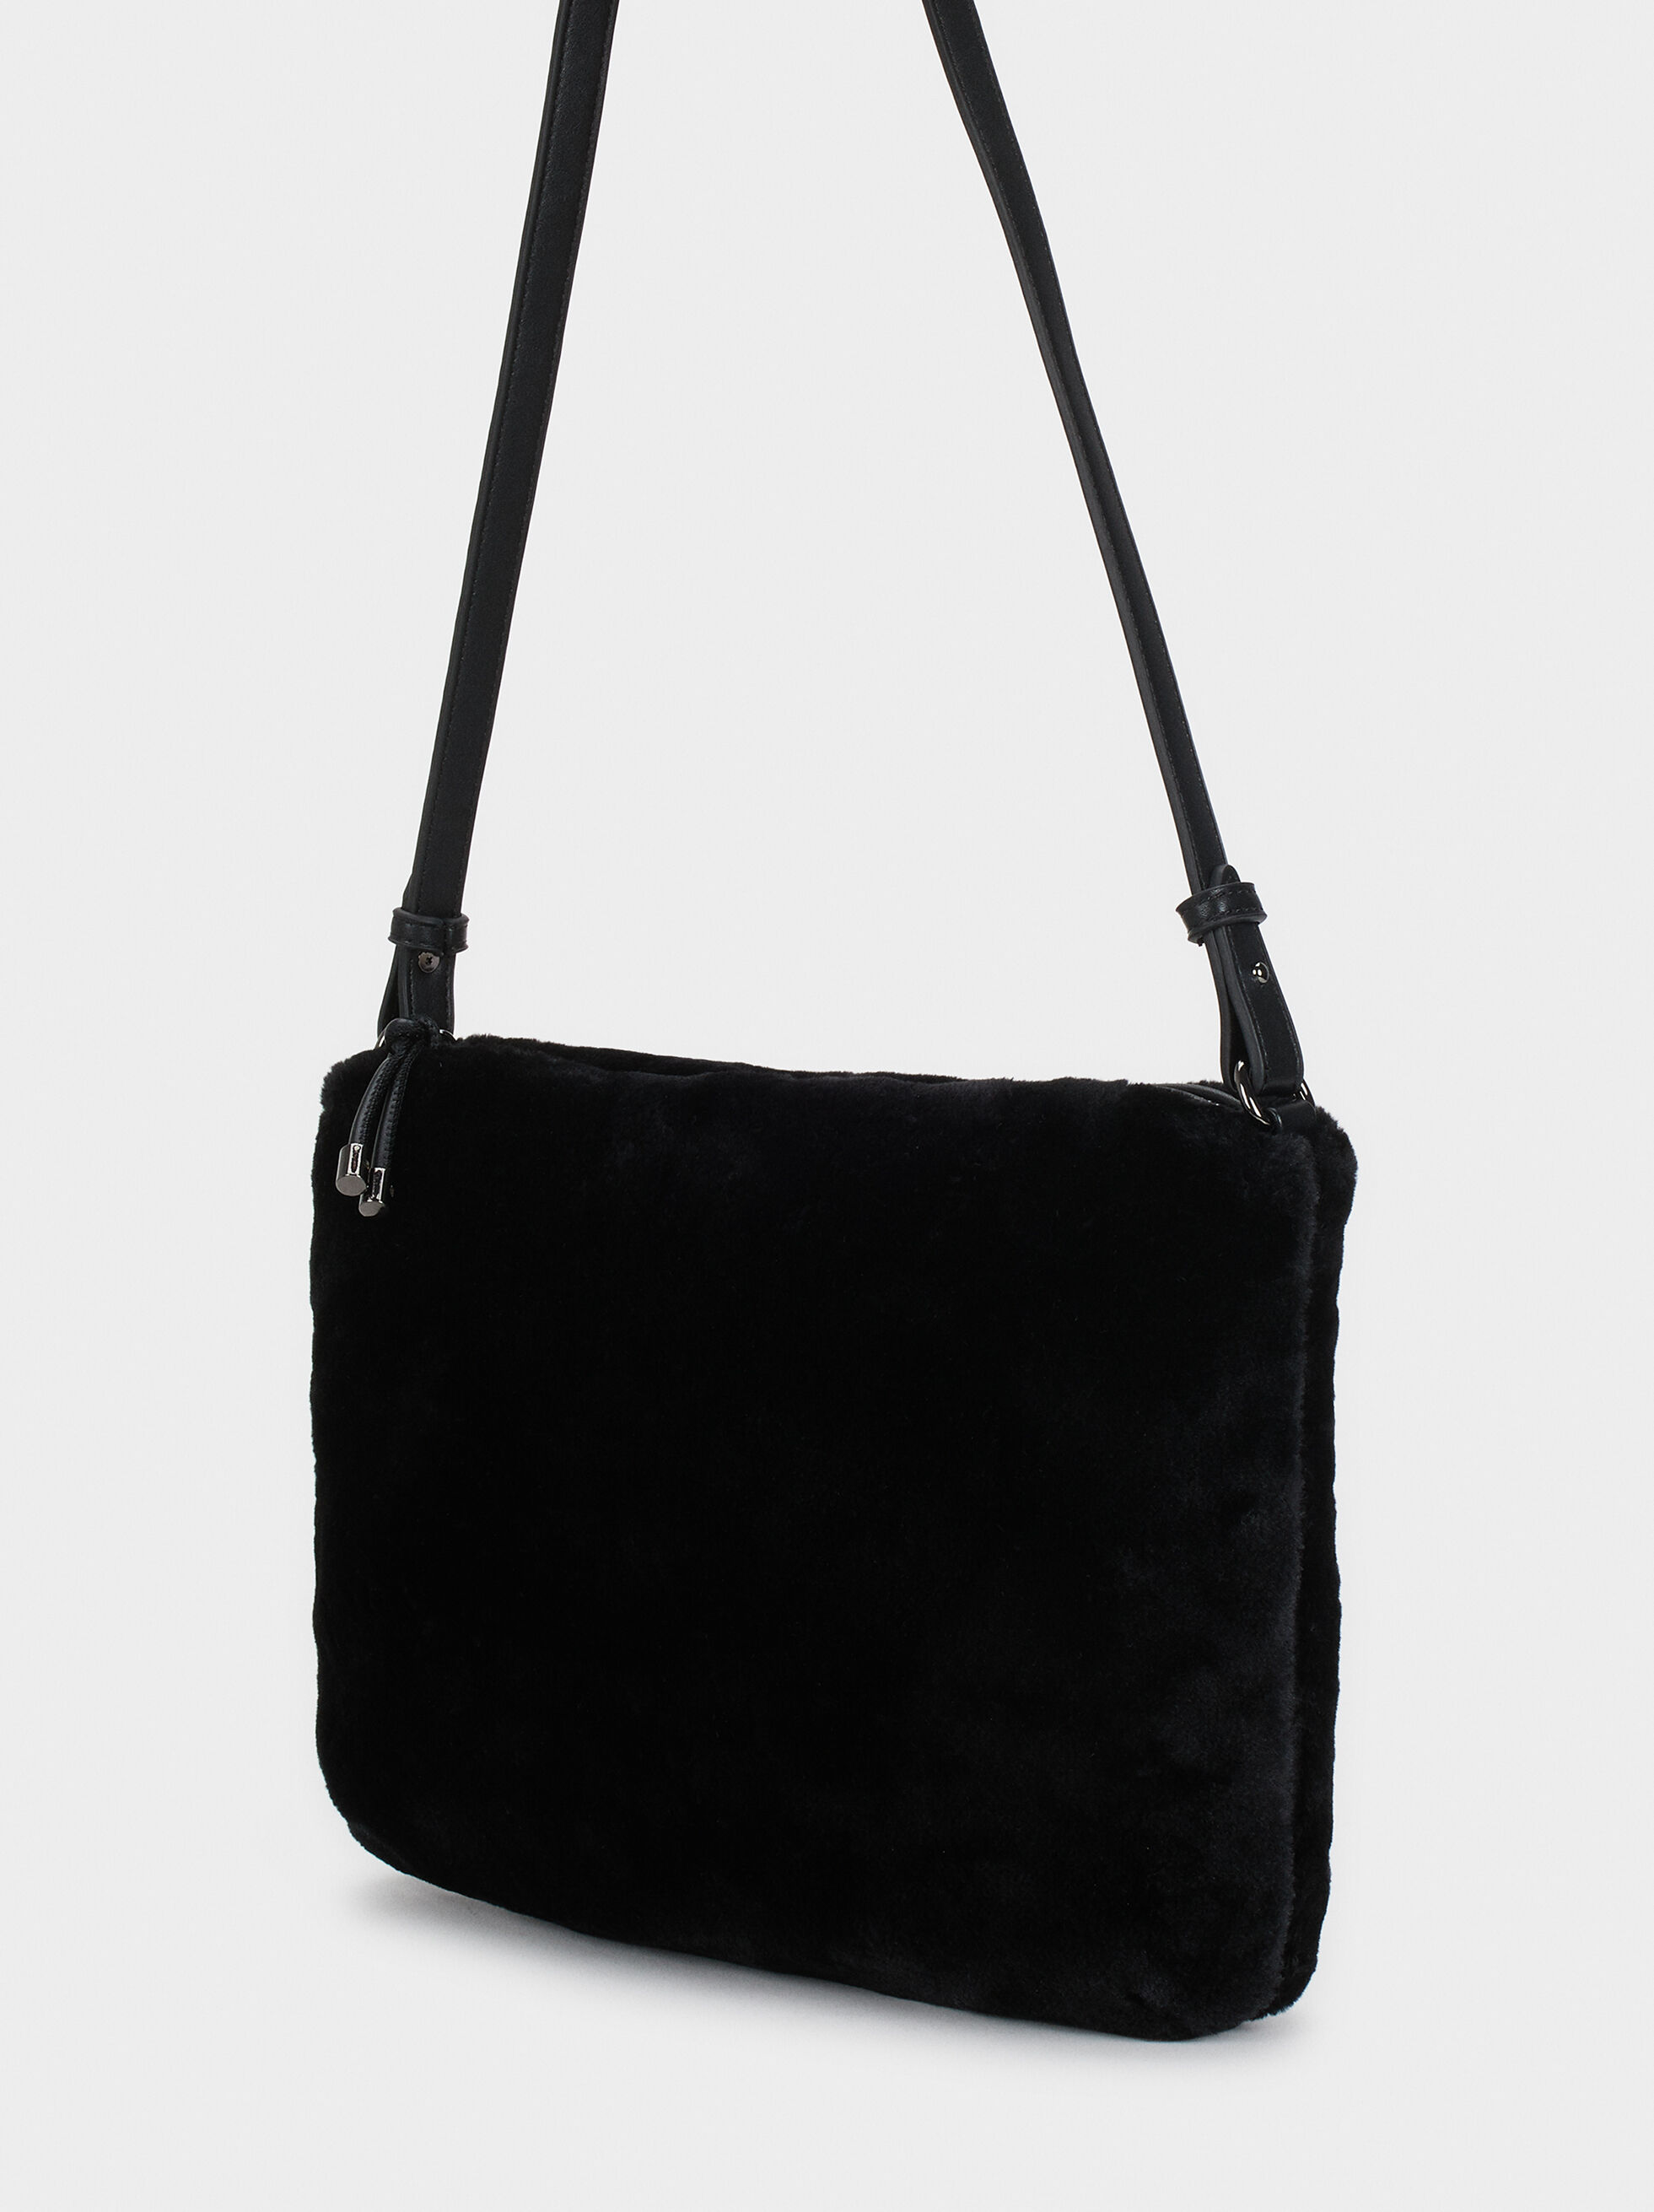 Jelly Shopper, Black, hi-res